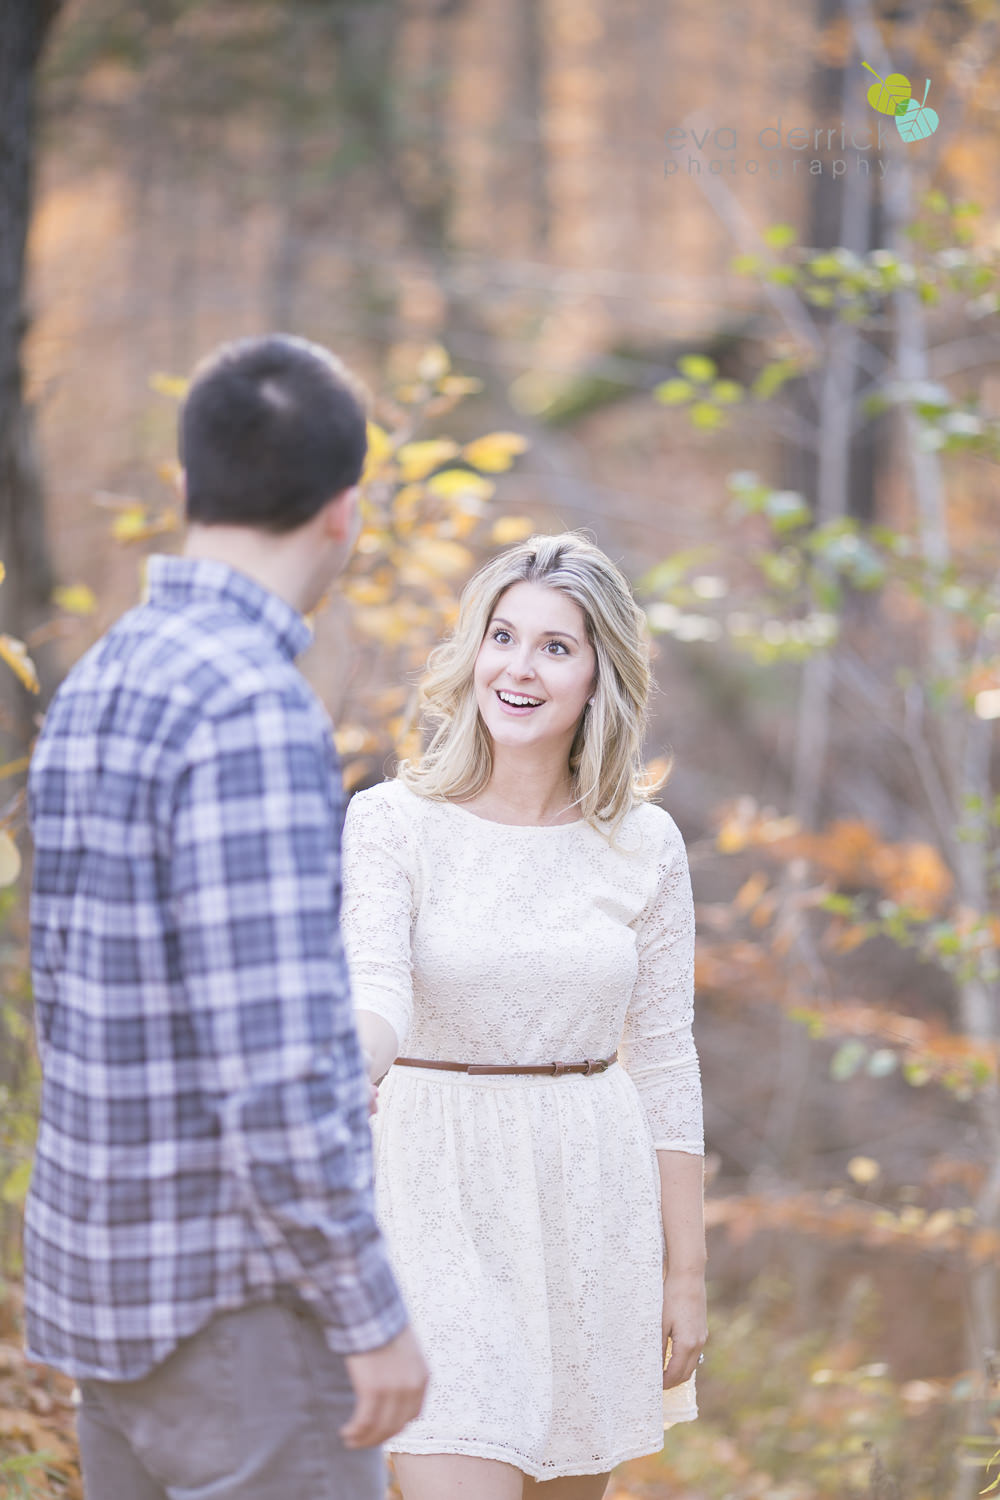 Albion-Hills-Photographer-Engagement-Session-Alanna-Matt-photography-by-Eva-Derrick-Photography-001.JPG